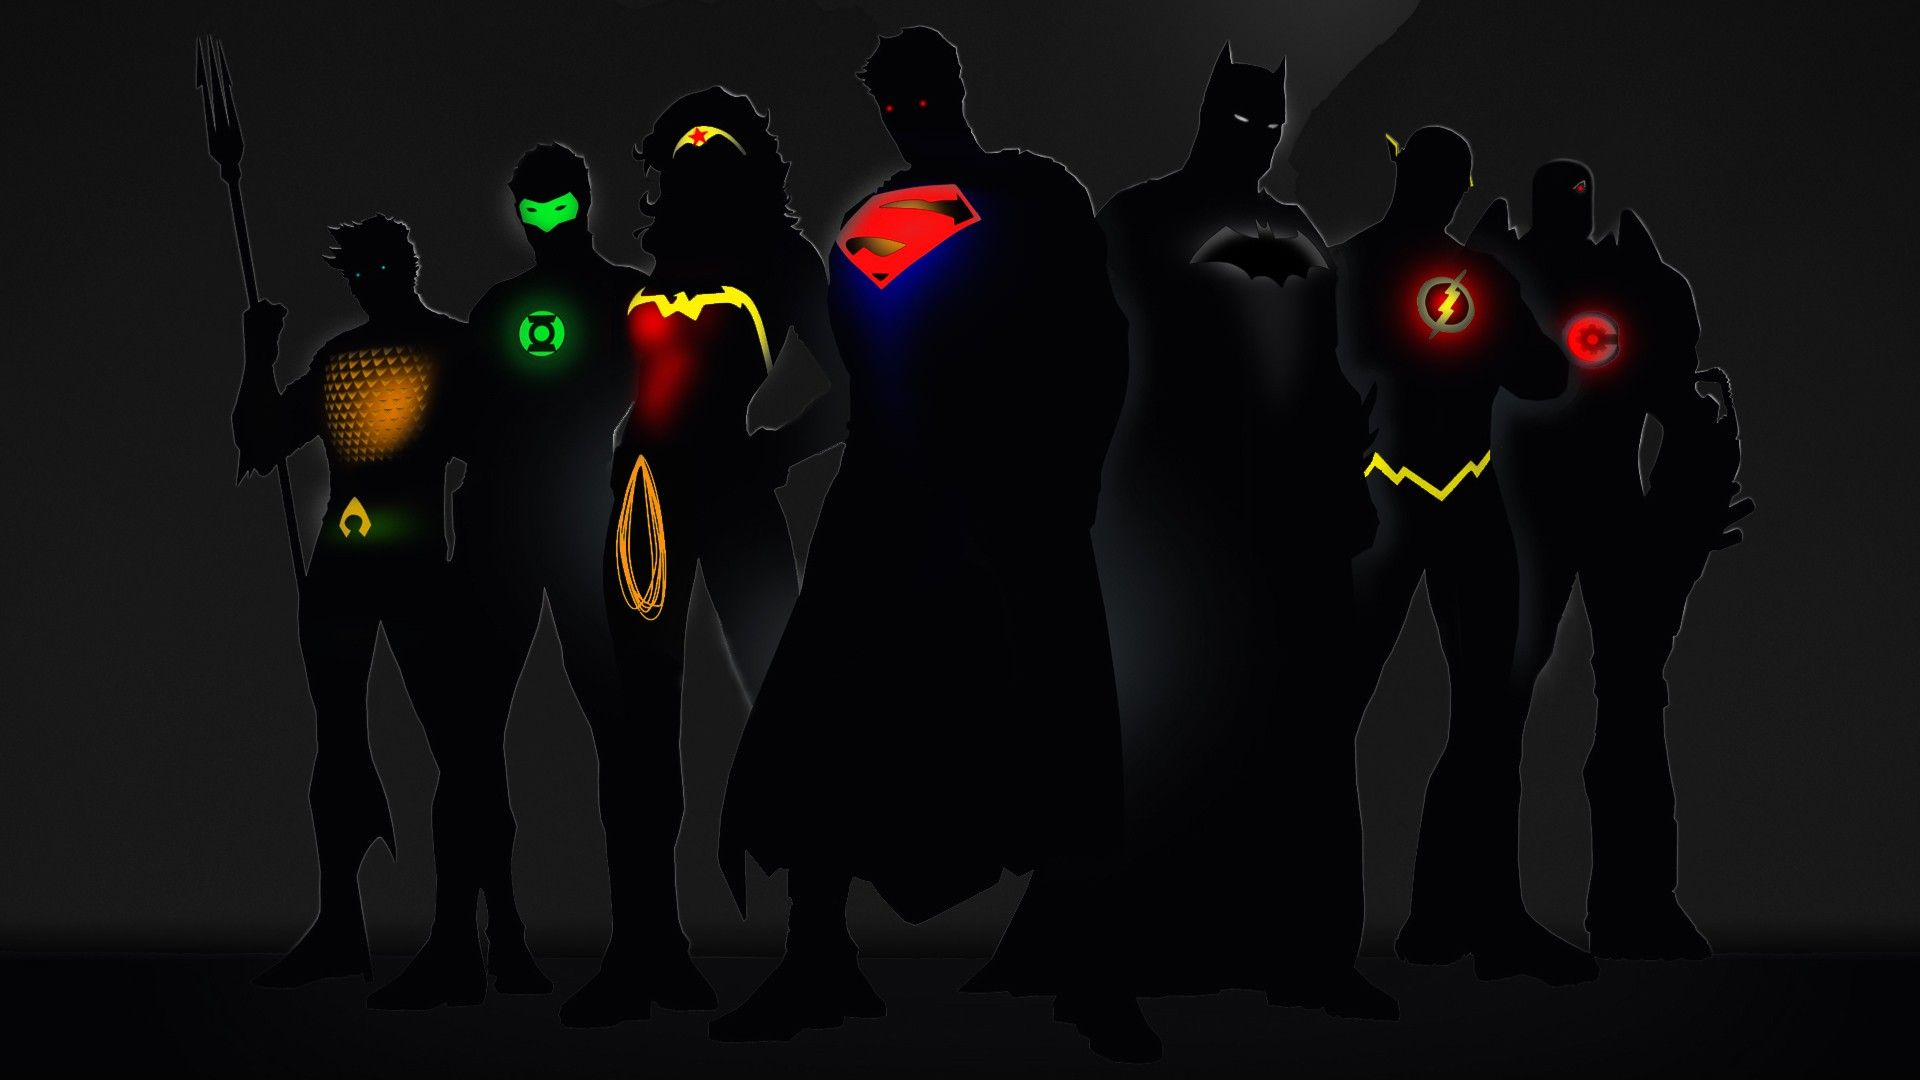 Wallpaper Of Superheroes